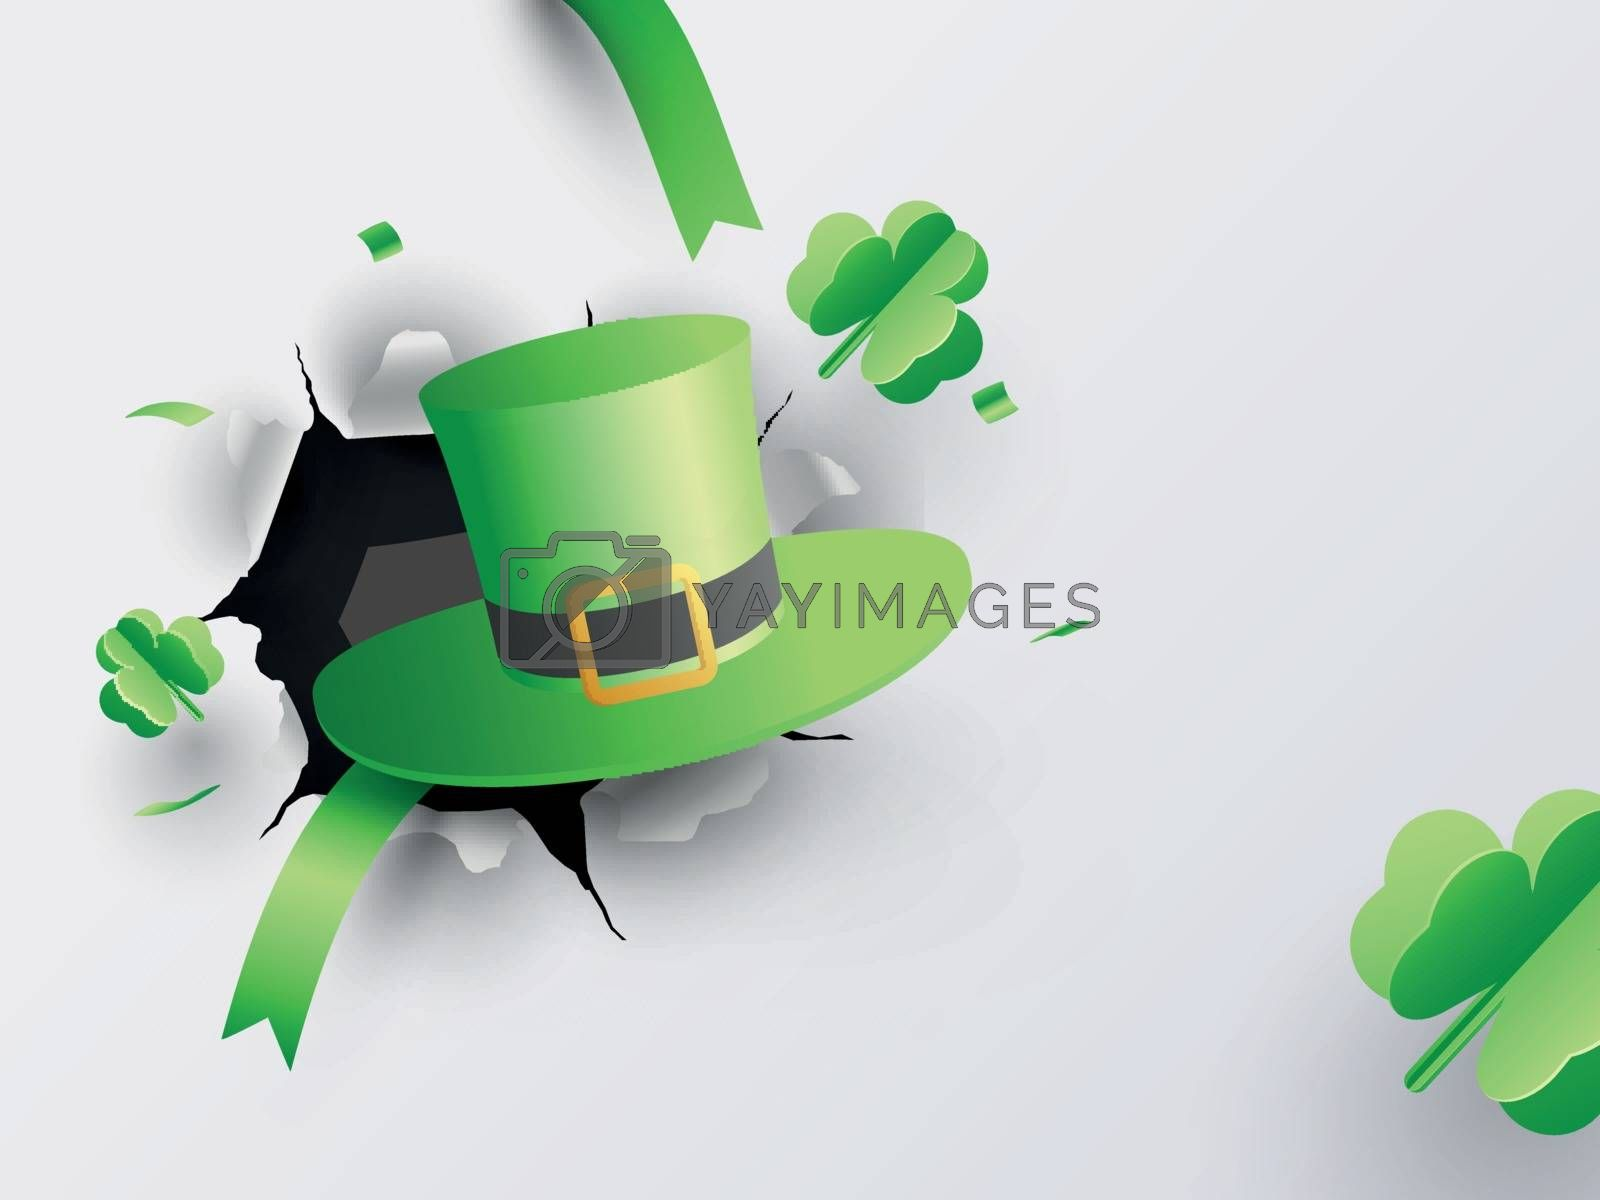 Royalty free image of Illustration of leprechaun hat with paper origami of clover leav by aispl